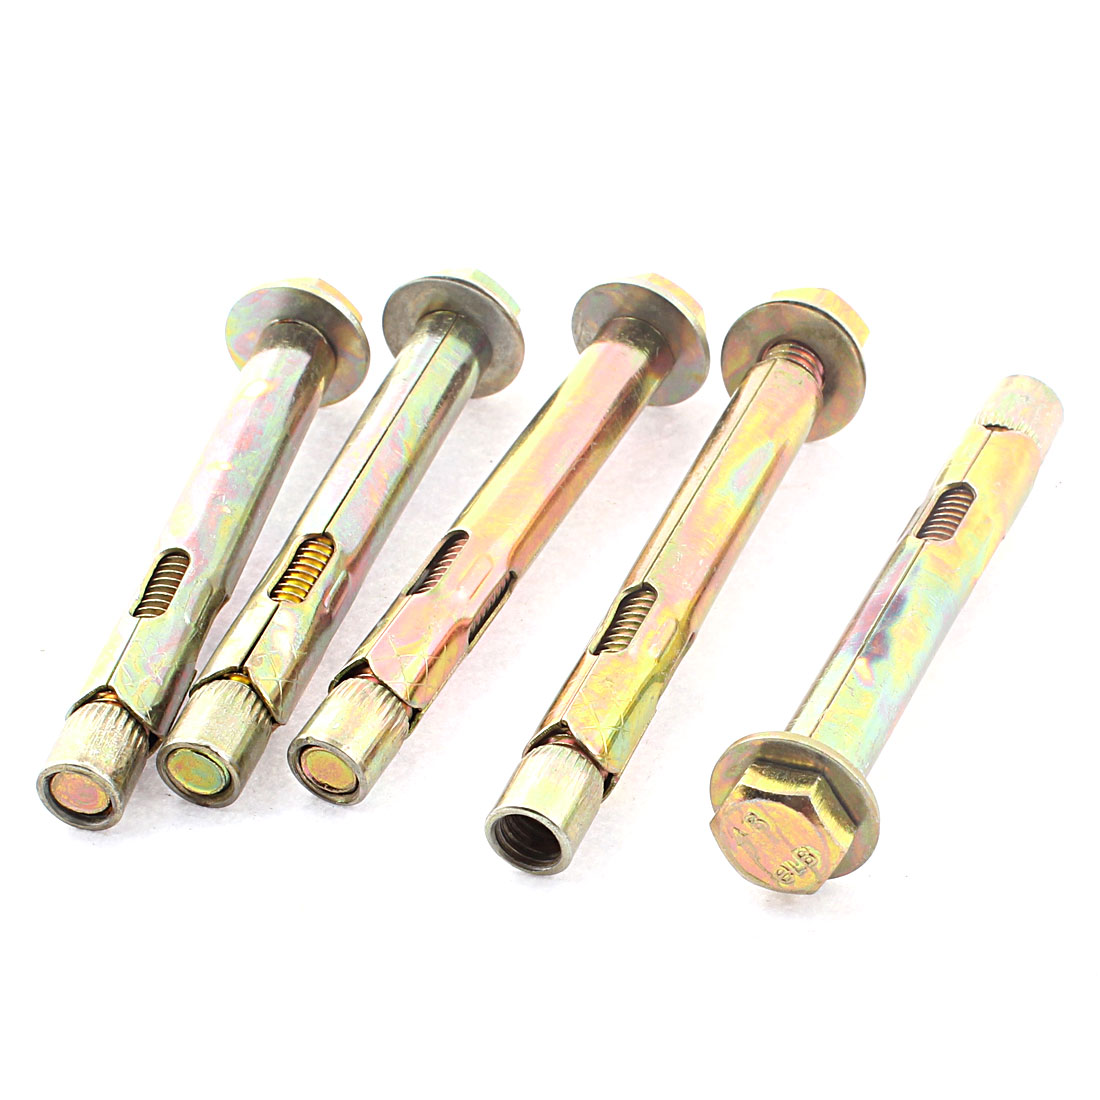 5Pcs M8 x 80mm Thread 87mm Long Hex Head Split Sleeve Expansion Bolts Anchors Screws Fasteners